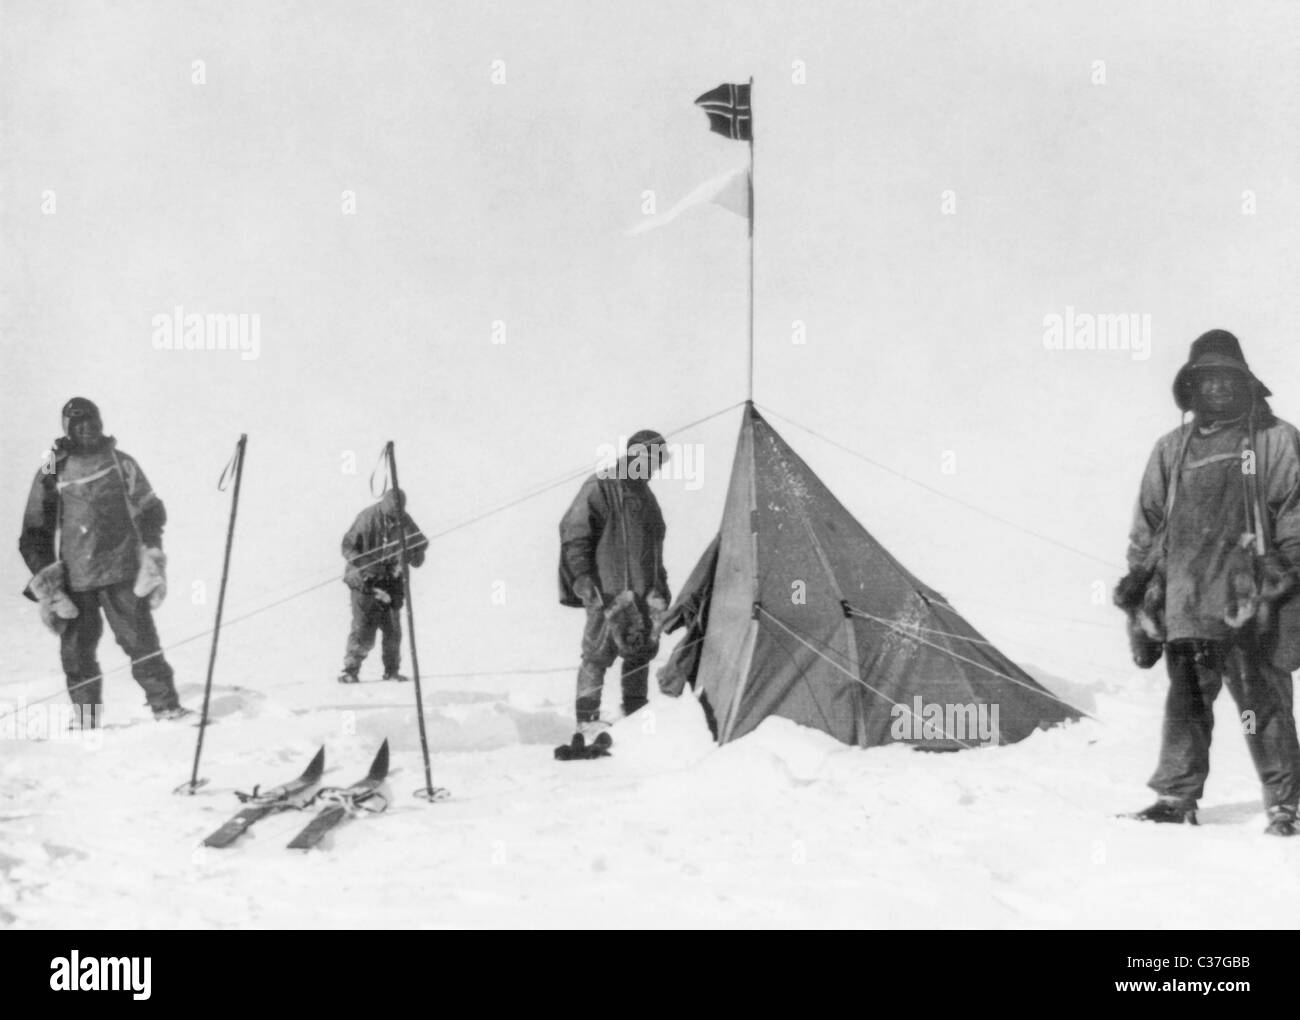 Robert Falcon Scott and members of his Terra Nova Expedition of 1910 - 1913 at the South Pole in Antarctica in January - Stock Image